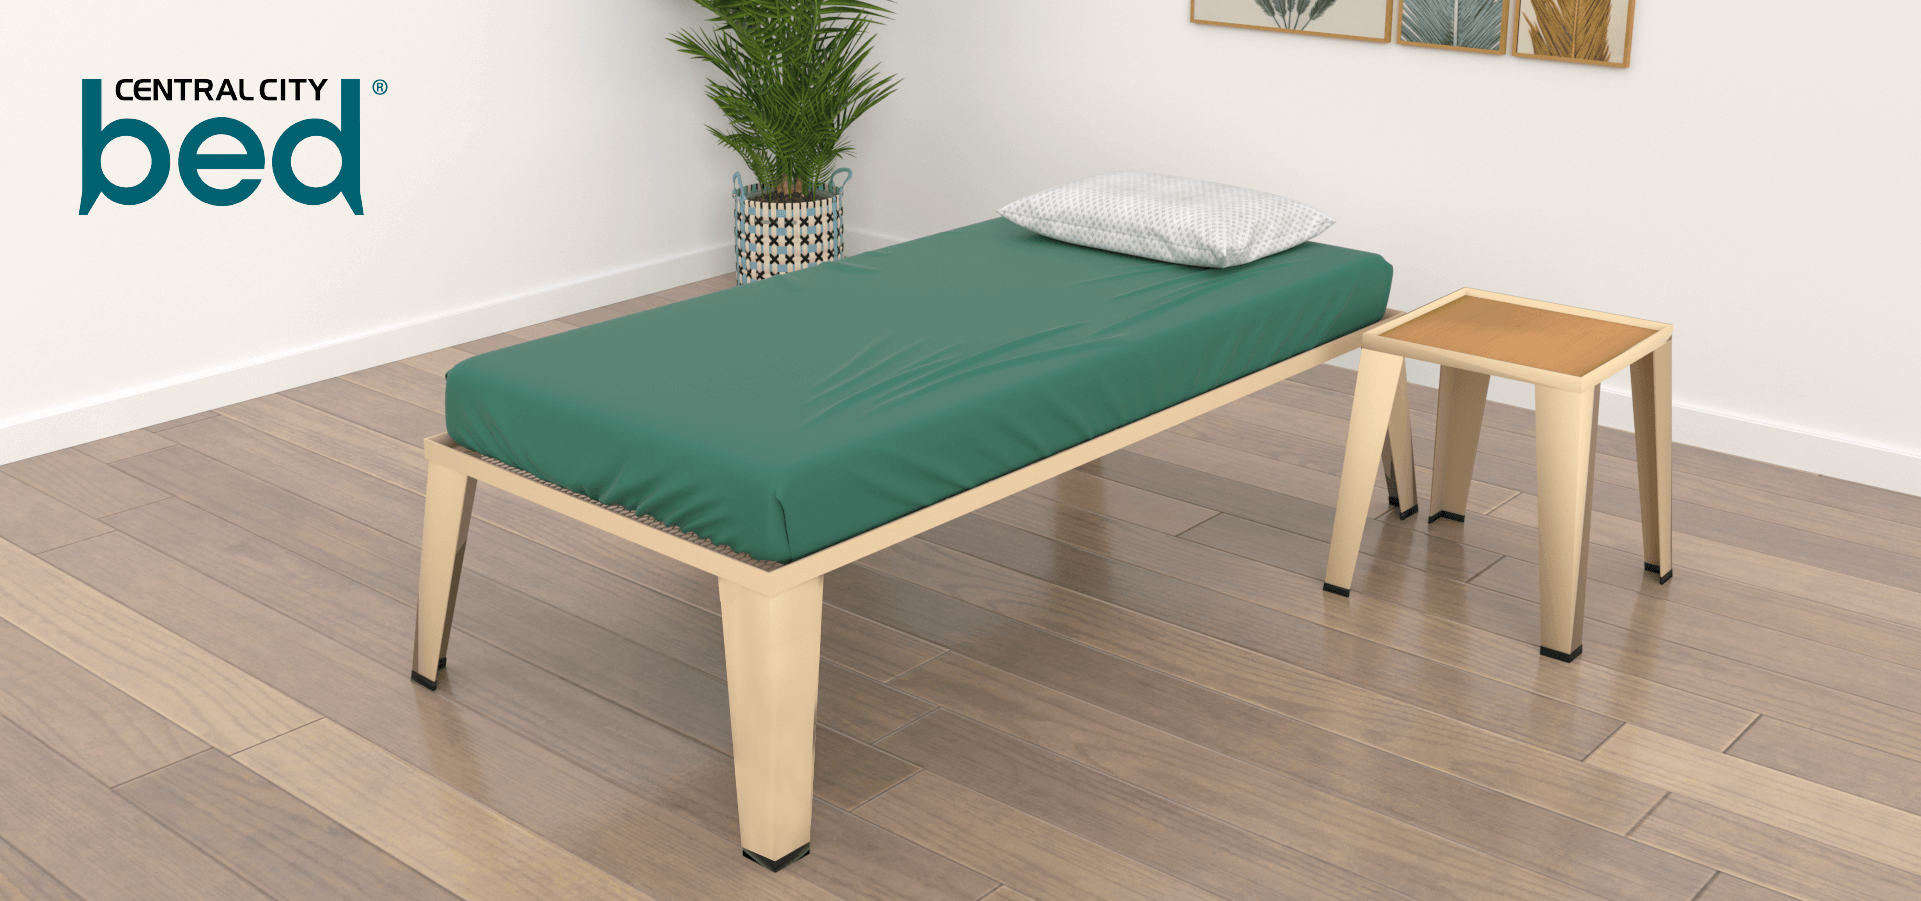 Product shot of central city beds with green mattress on bed frame